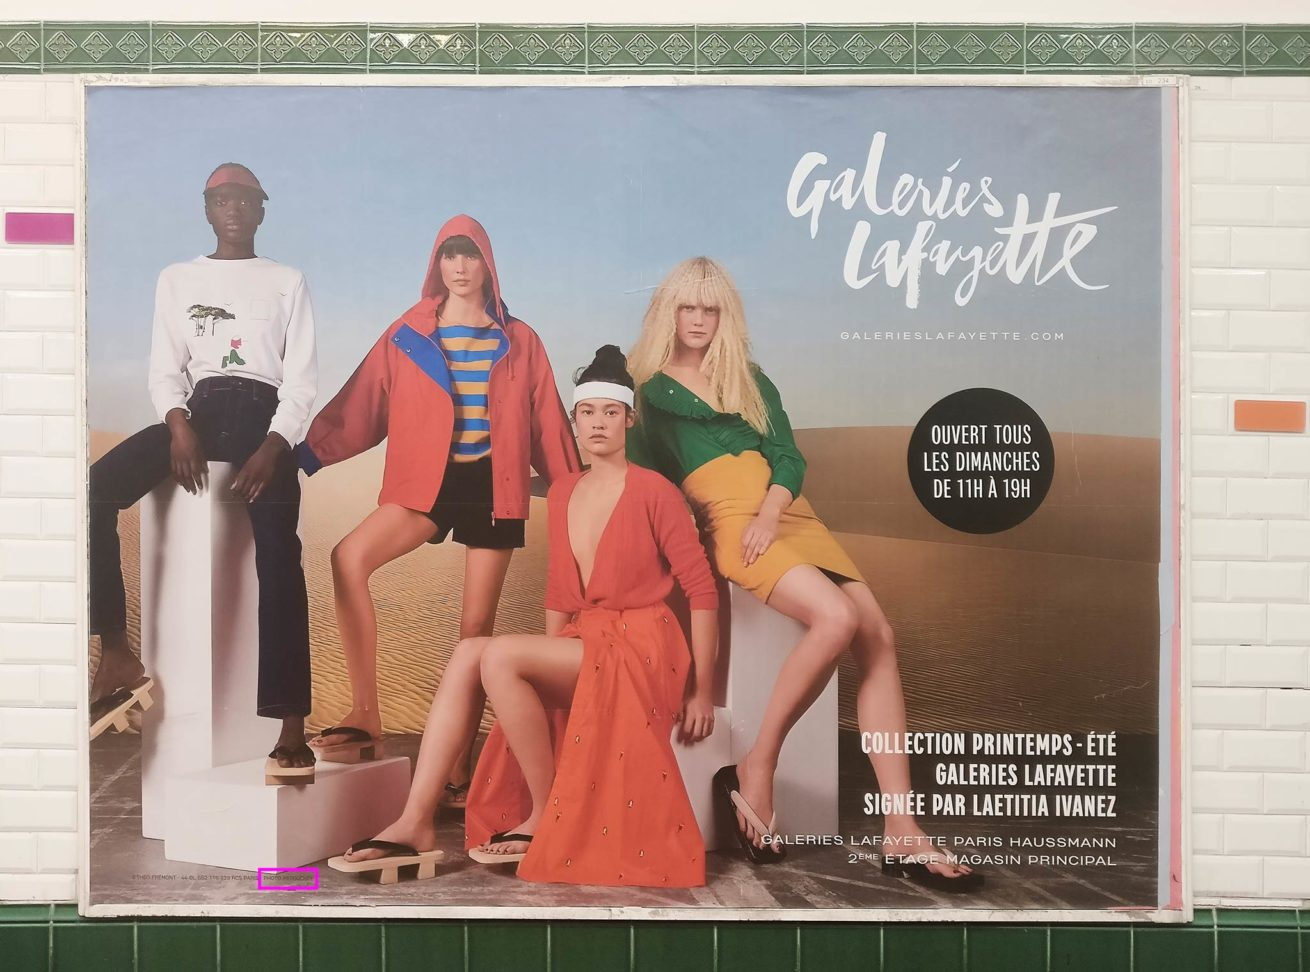 Metro station advertising with retouching lable for Galeries Lafayette - Printemps - Été Collection Paris